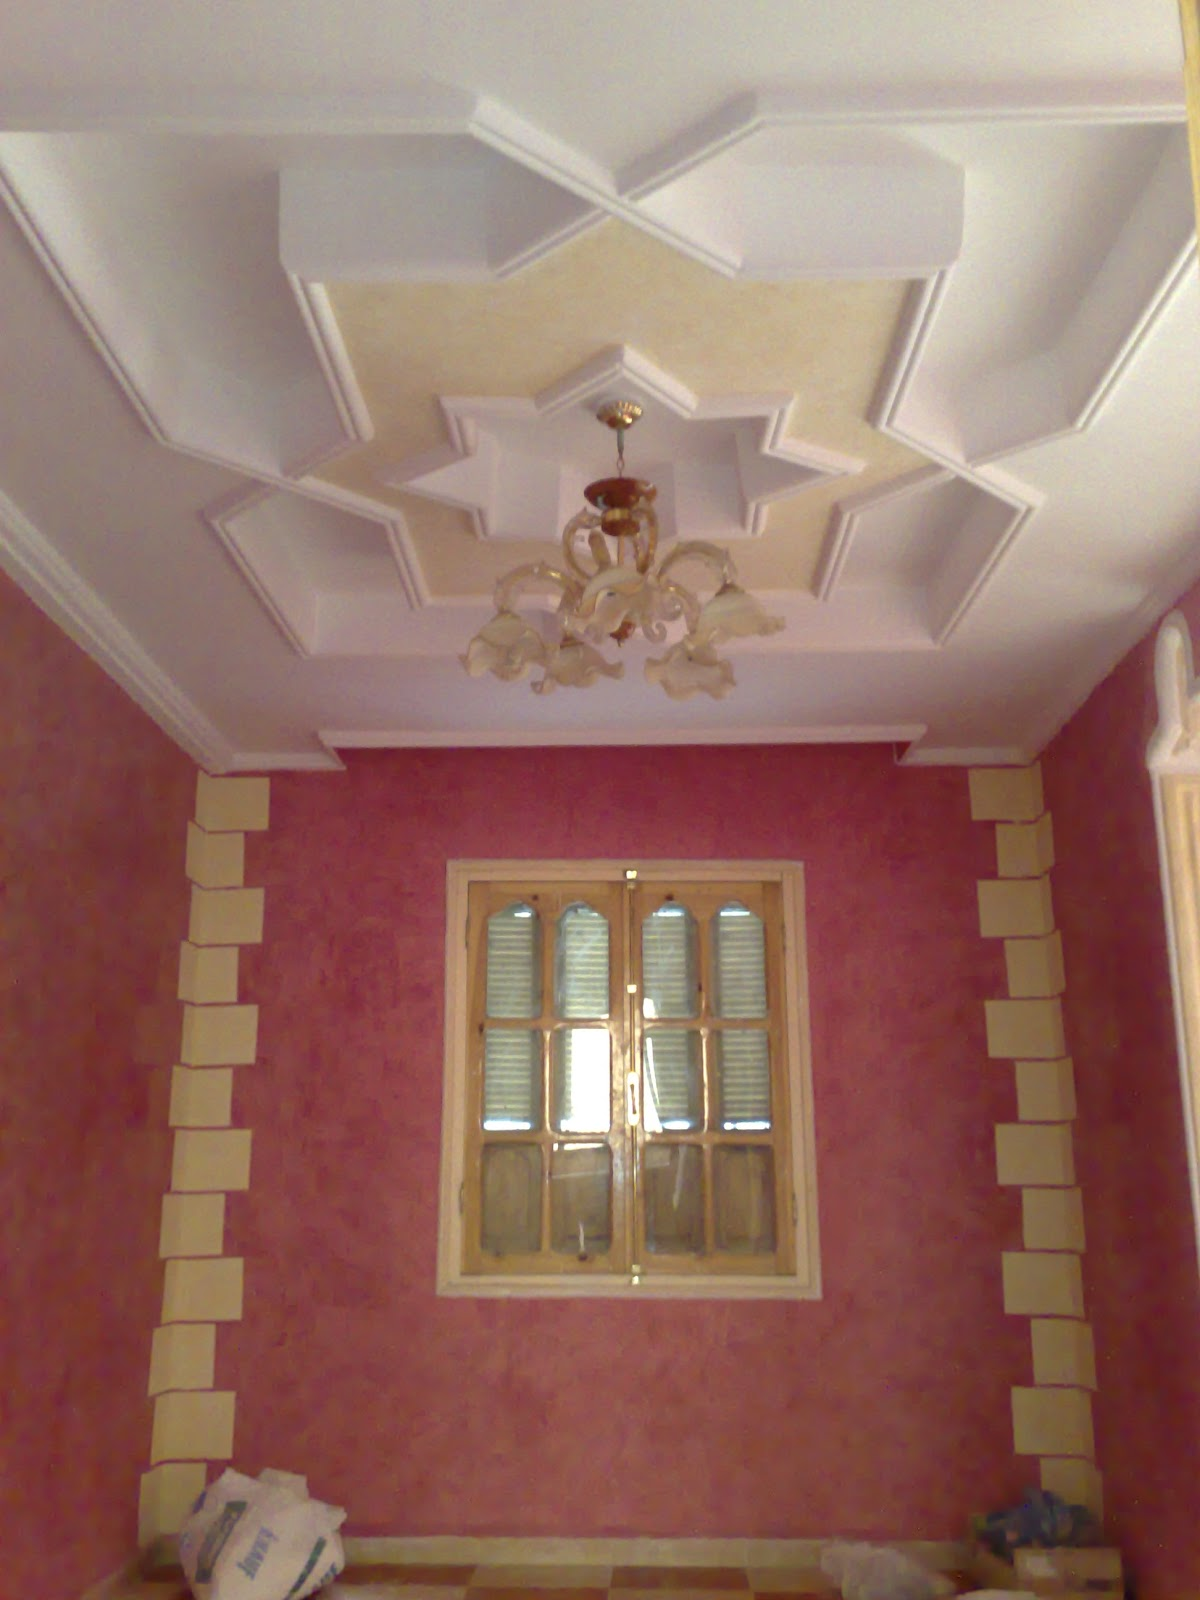 Decoration plafond platre platre for Photo decoration plafond platre